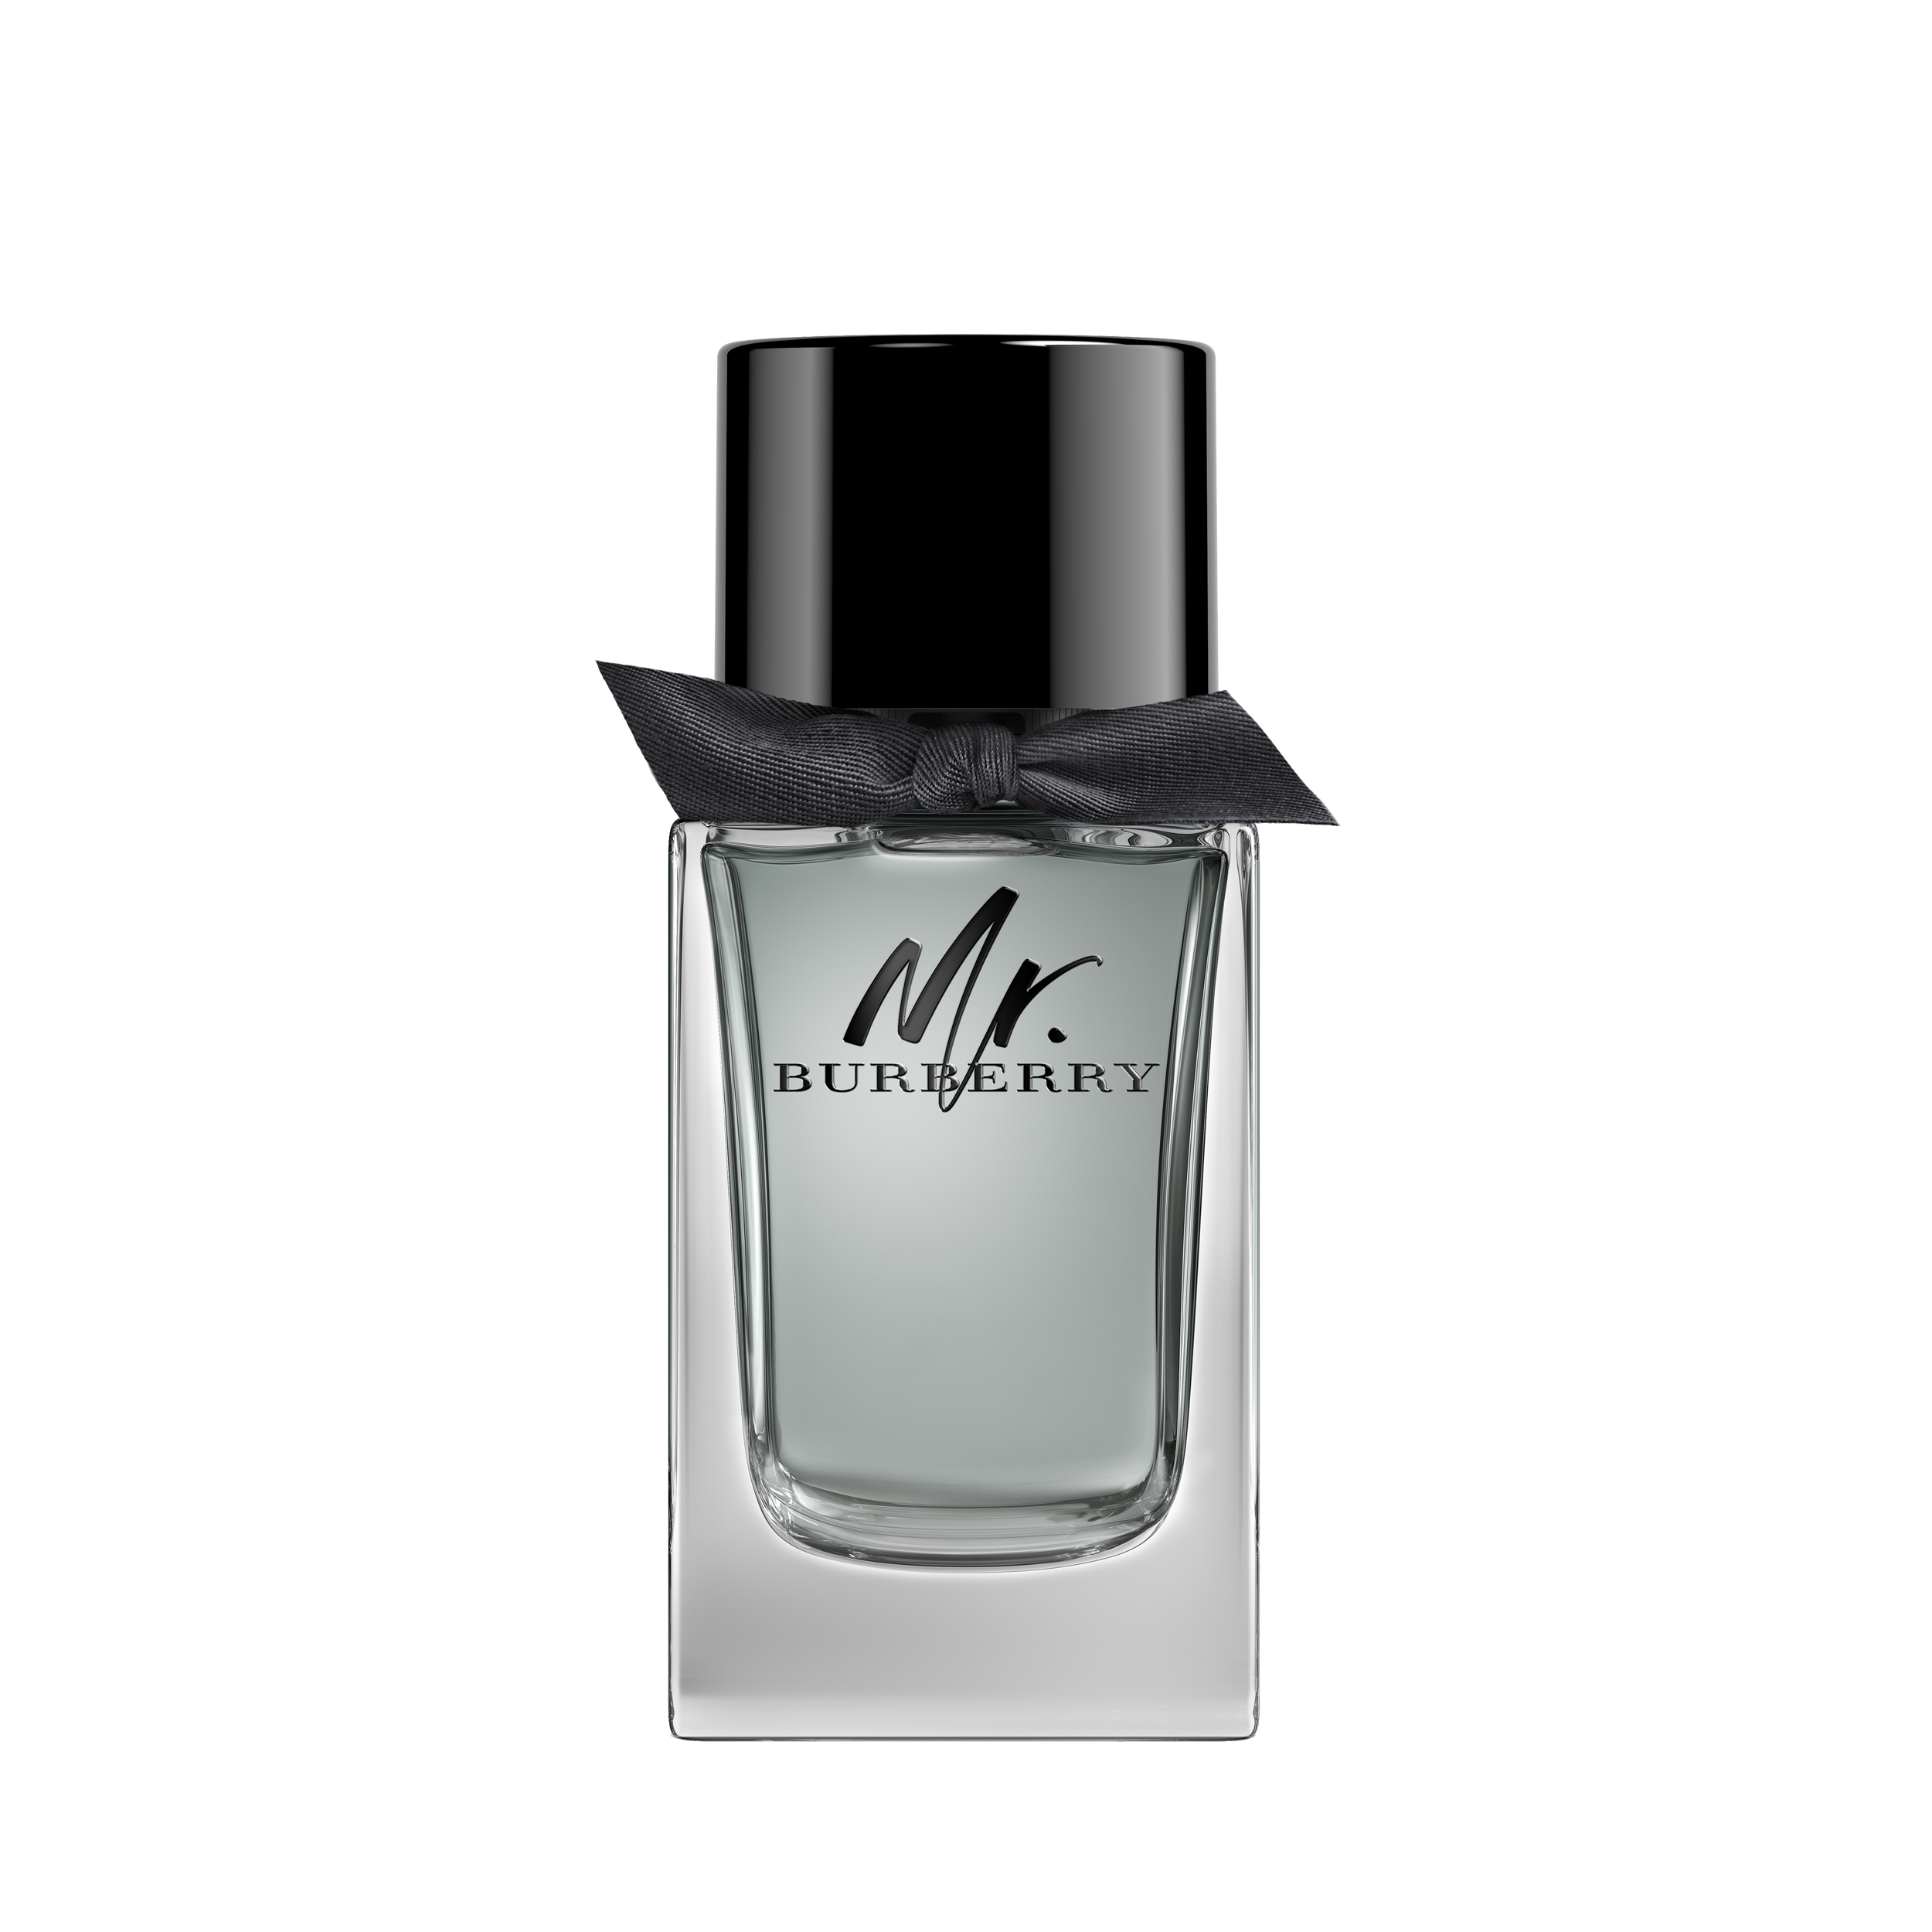 BURBERRY MR. BURBERRY EDT 100 ML